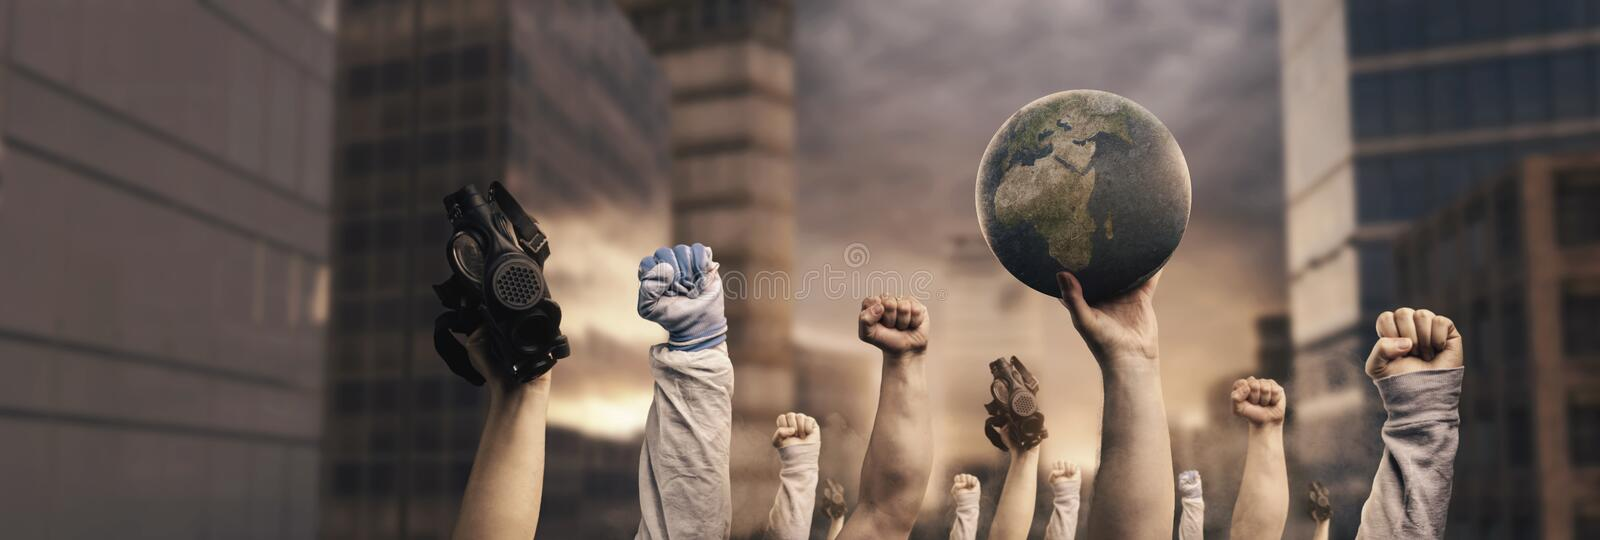 Different raising up left fists protest against climate change in front of city and sunset in depth of field royalty free stock images